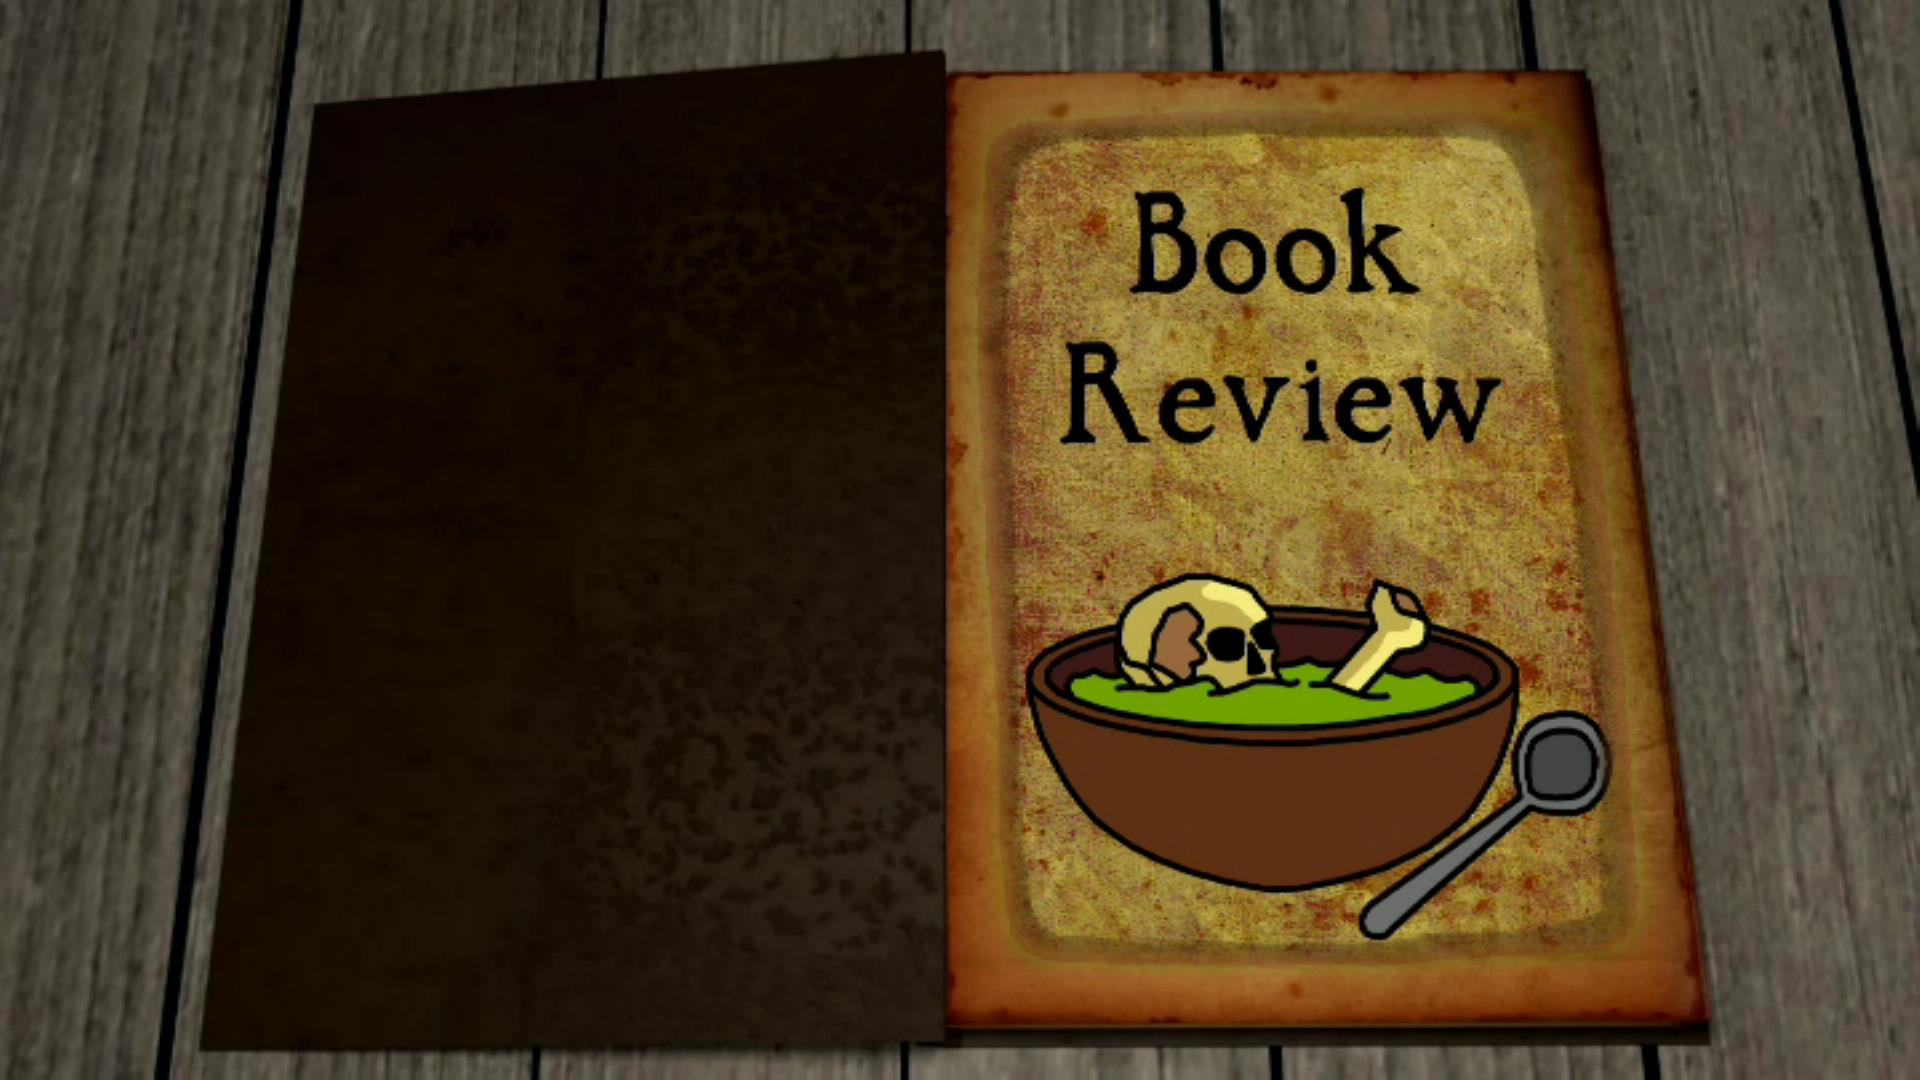 Book Reviews: Series Introduction